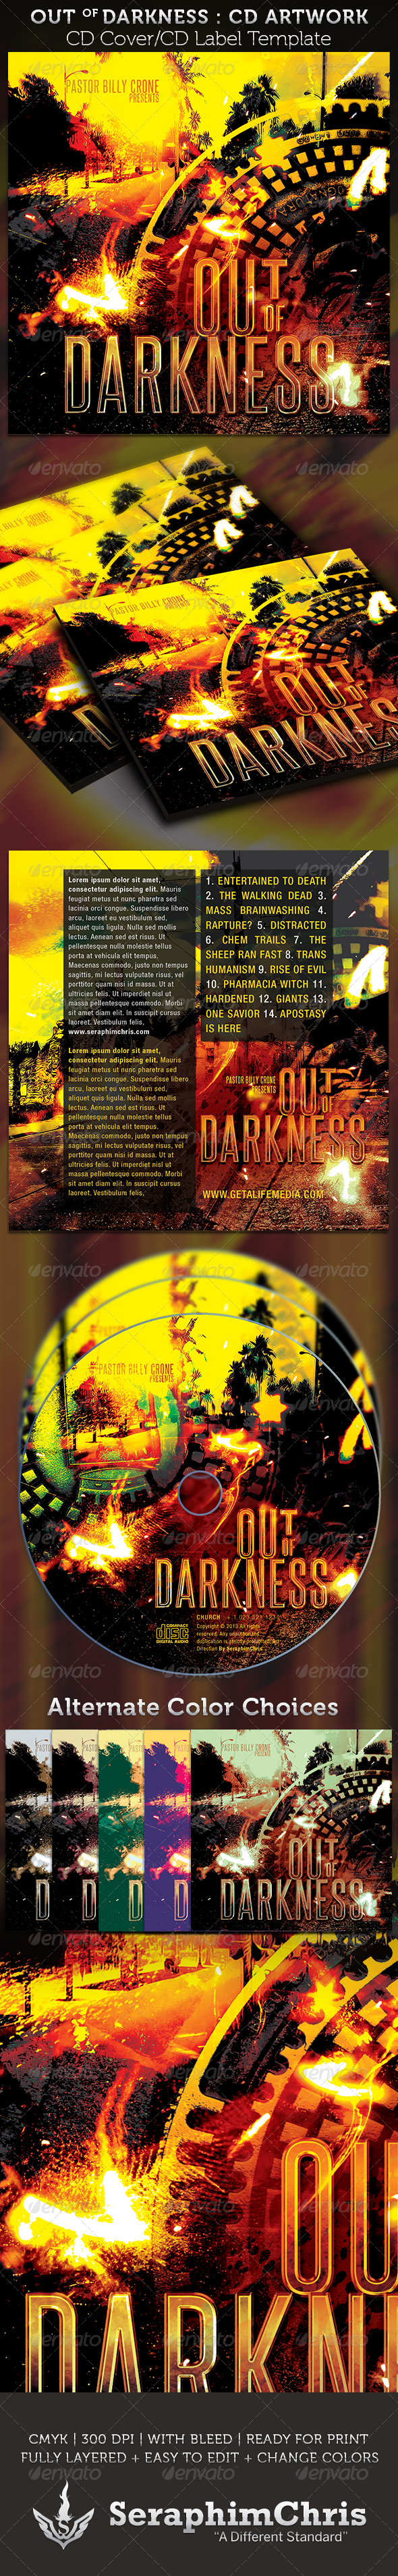 GraphicRiver Out of Darkness CD Cover Artowork Template 4087710